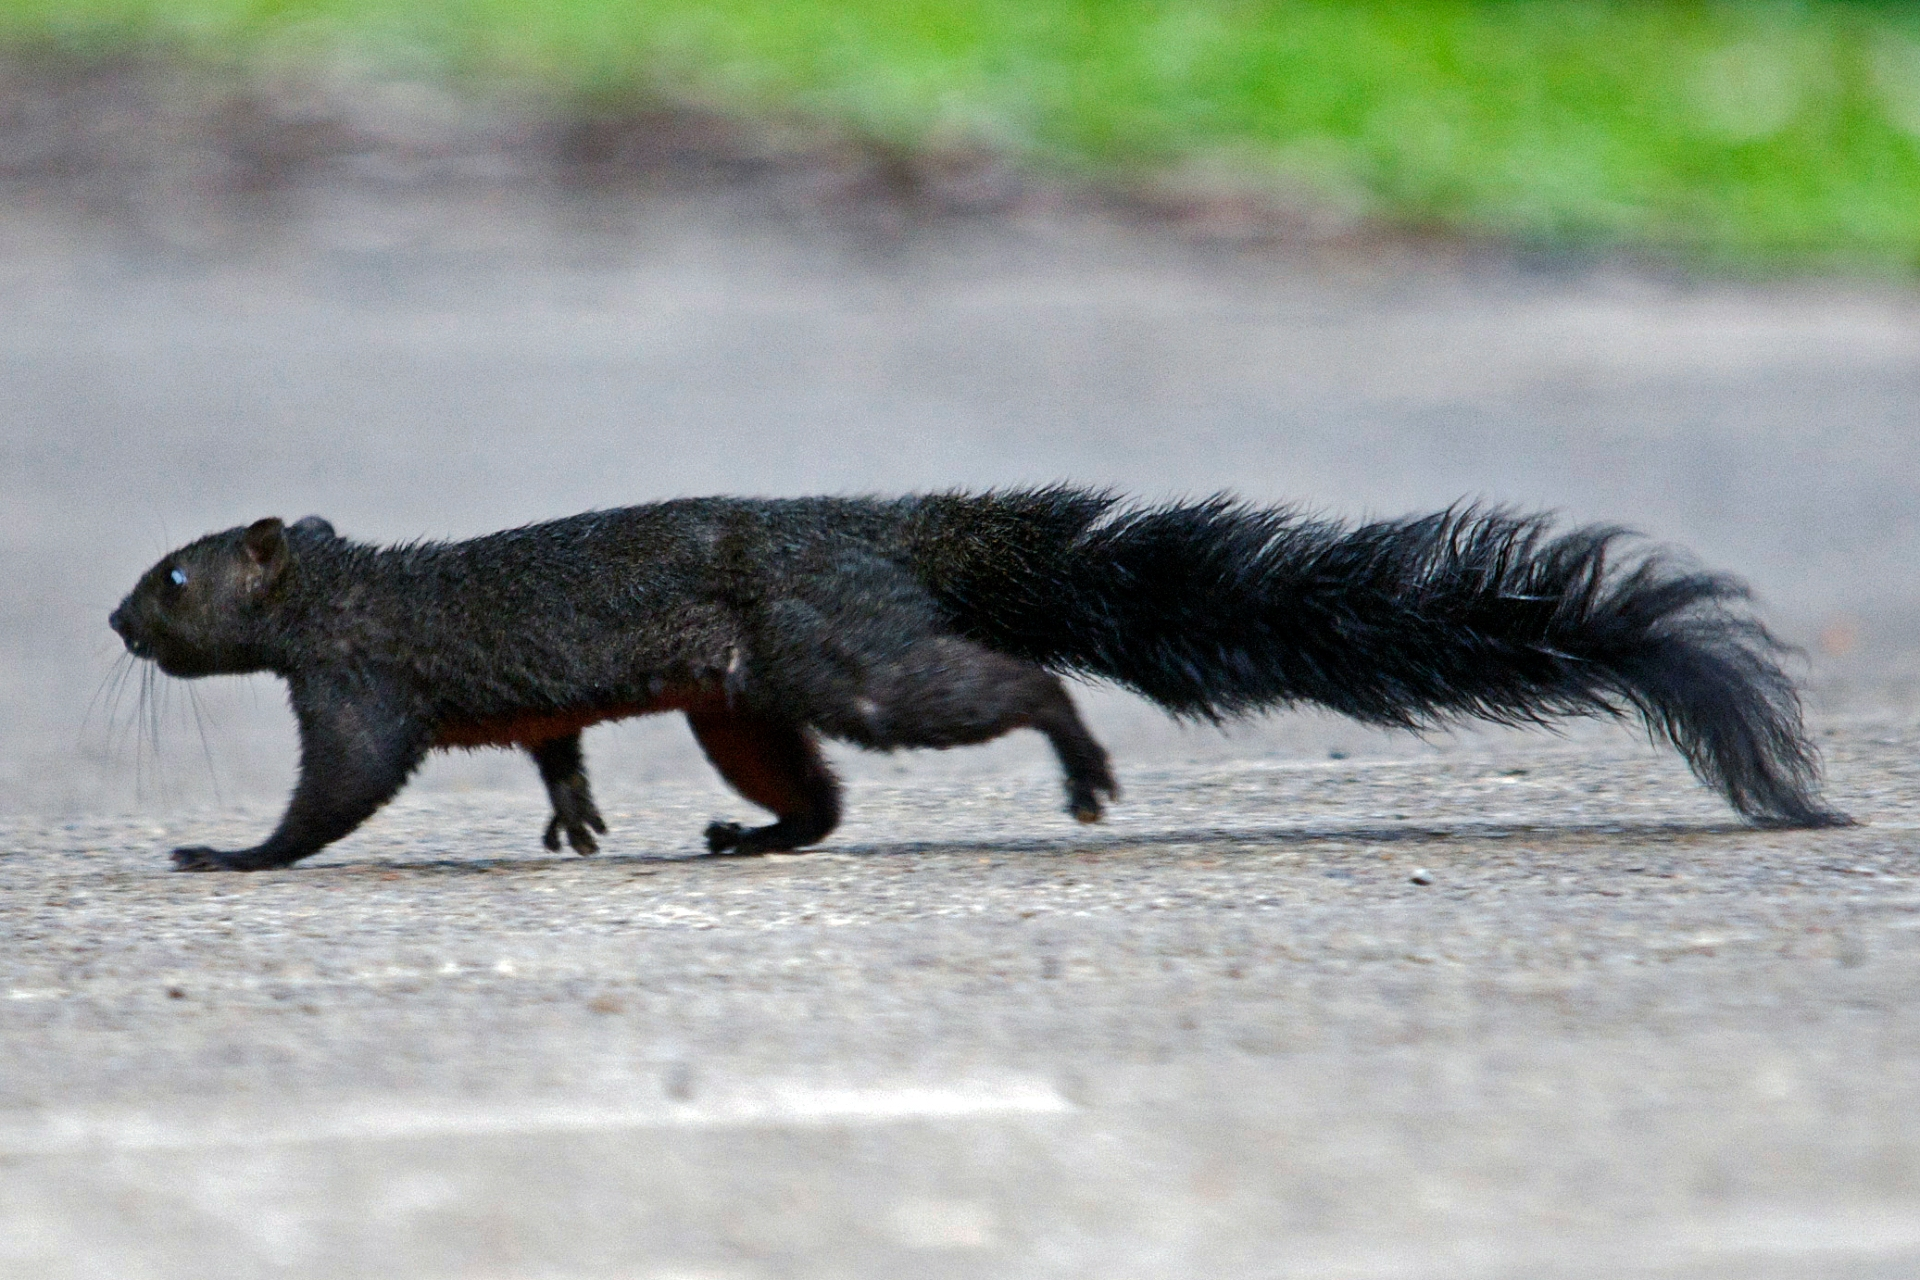 The Pallas's squirrel is most active at dawn and dusk. It is a medium-sized squirrel with a body that is 16-28 cm long, and a tail that is about the same length. Photo: Vijay Anand Ismavel